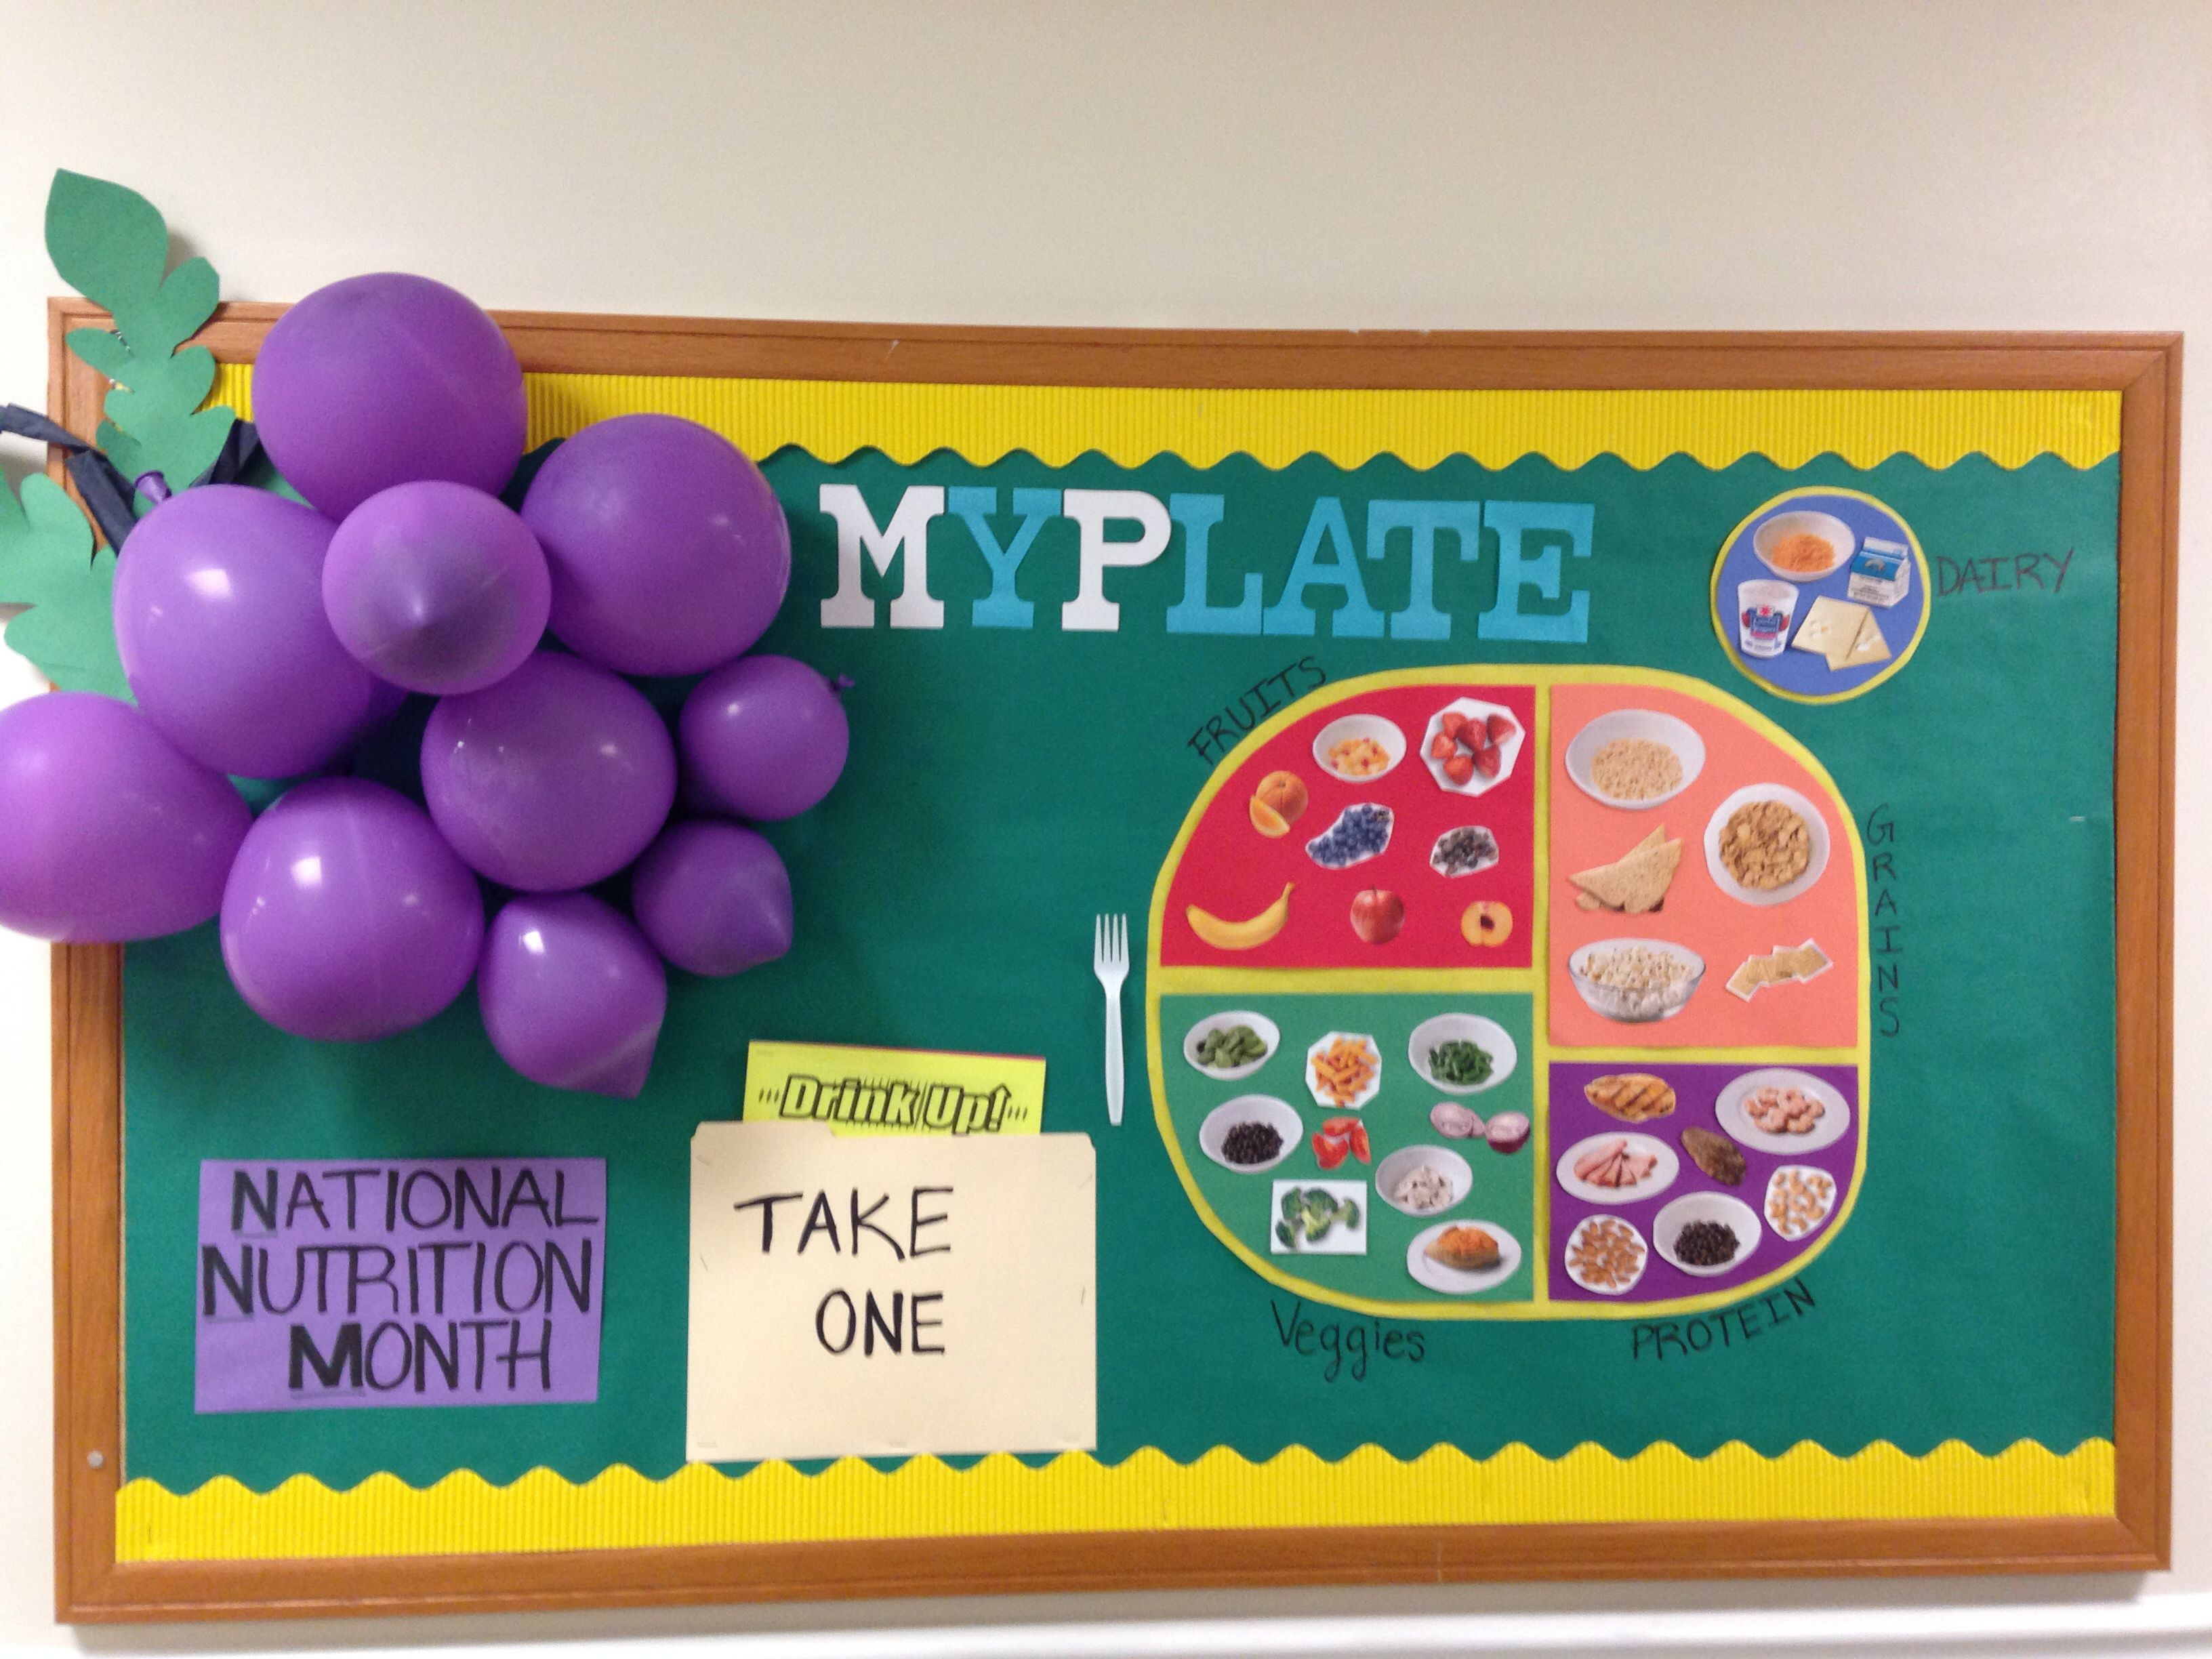 Bulletin board ideas for the month of july - National Nutrition Month Bulletin Board Myplate